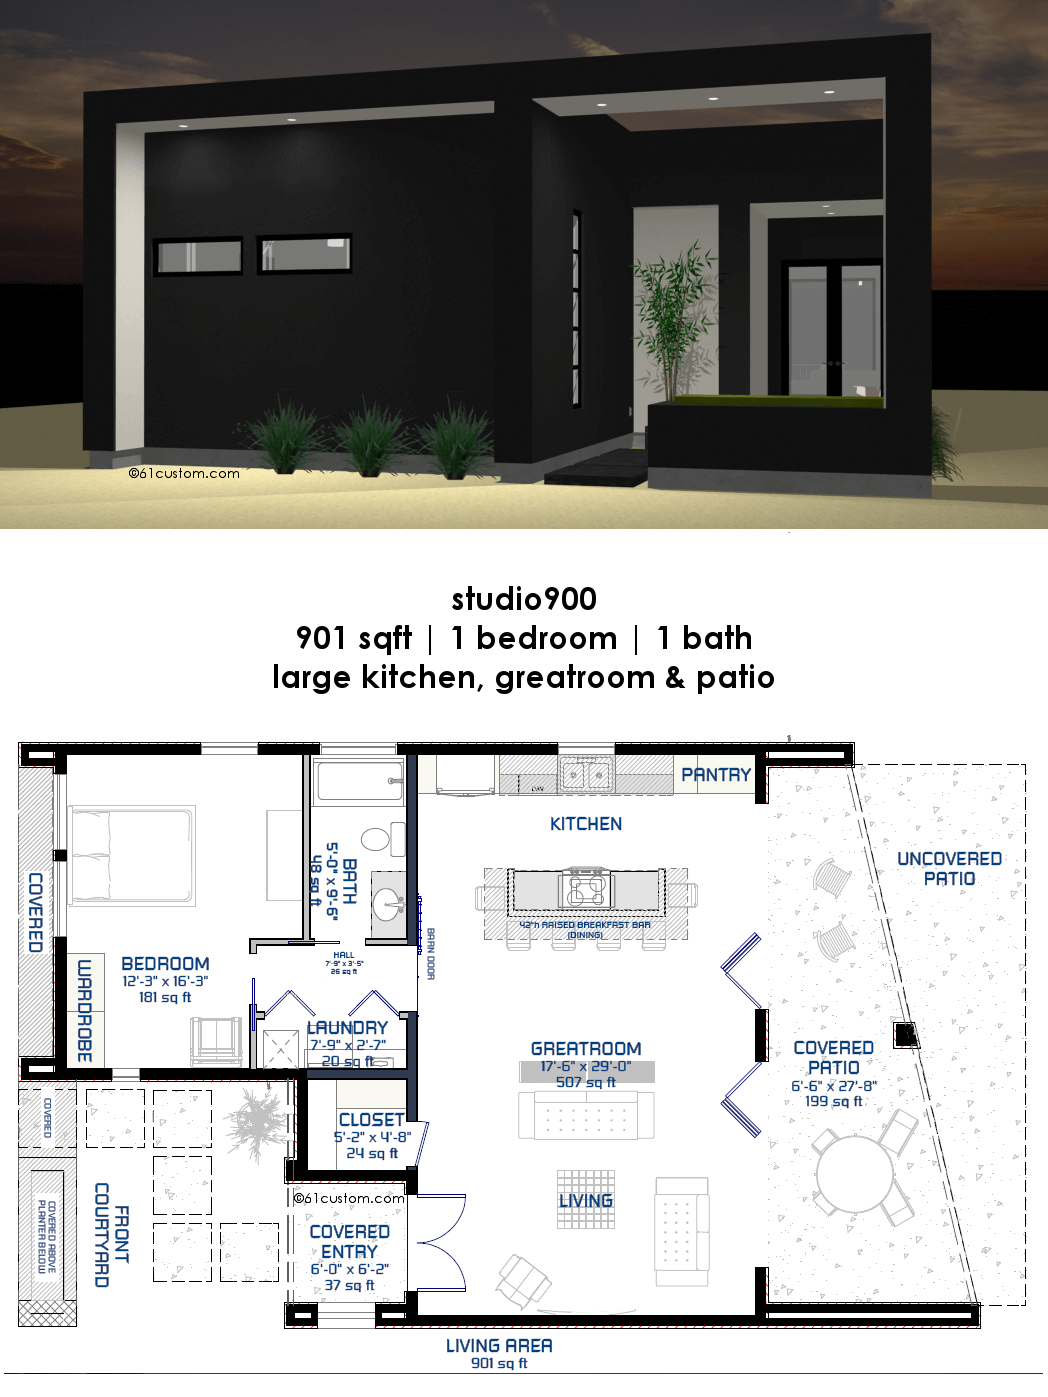 Studio900 small modern house plan with courtyard 61custom for Contemporary house floor plans